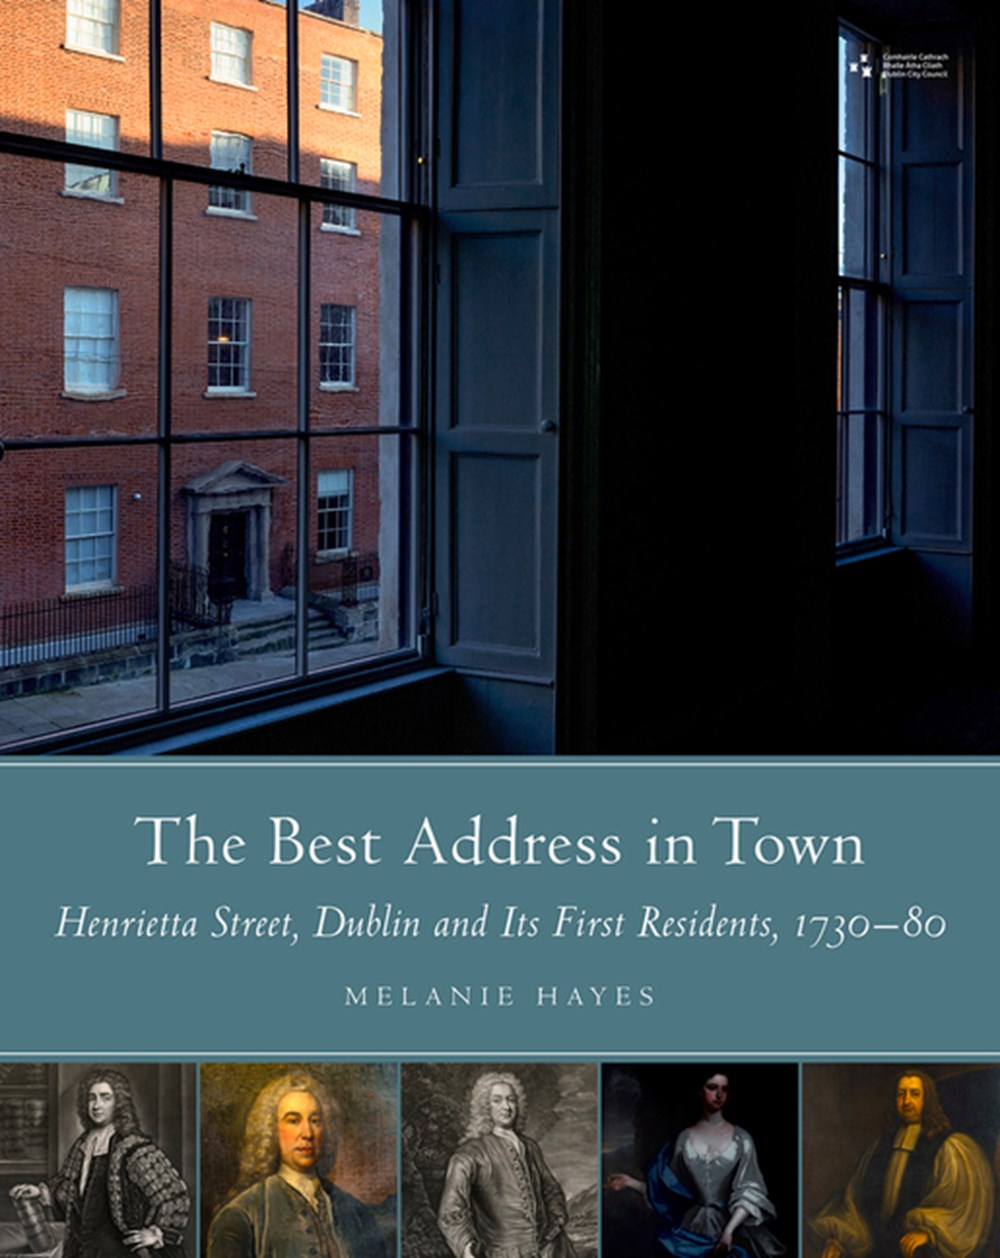 Best Address in Town Henrietta Street, Dublin and Its First Residents (1730-1780)